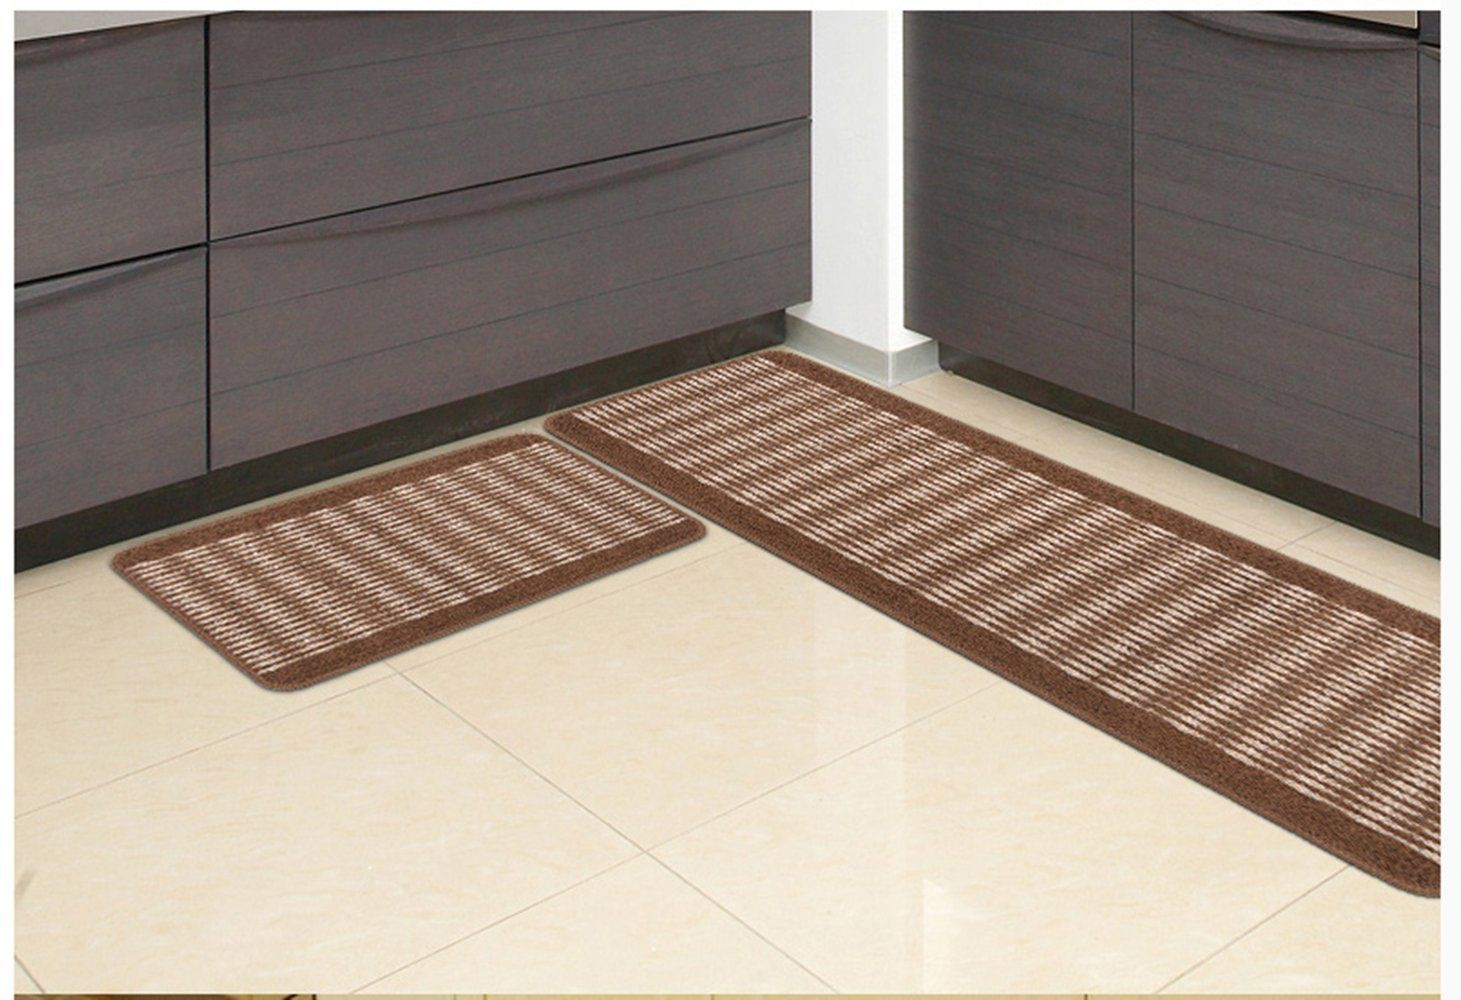 Kitchen Floor Runner Oak Table And Chairs Ustide Rug Set Washable Stripe Pattern Rugs Non Slip Bath Mats Water Absorption Toilet